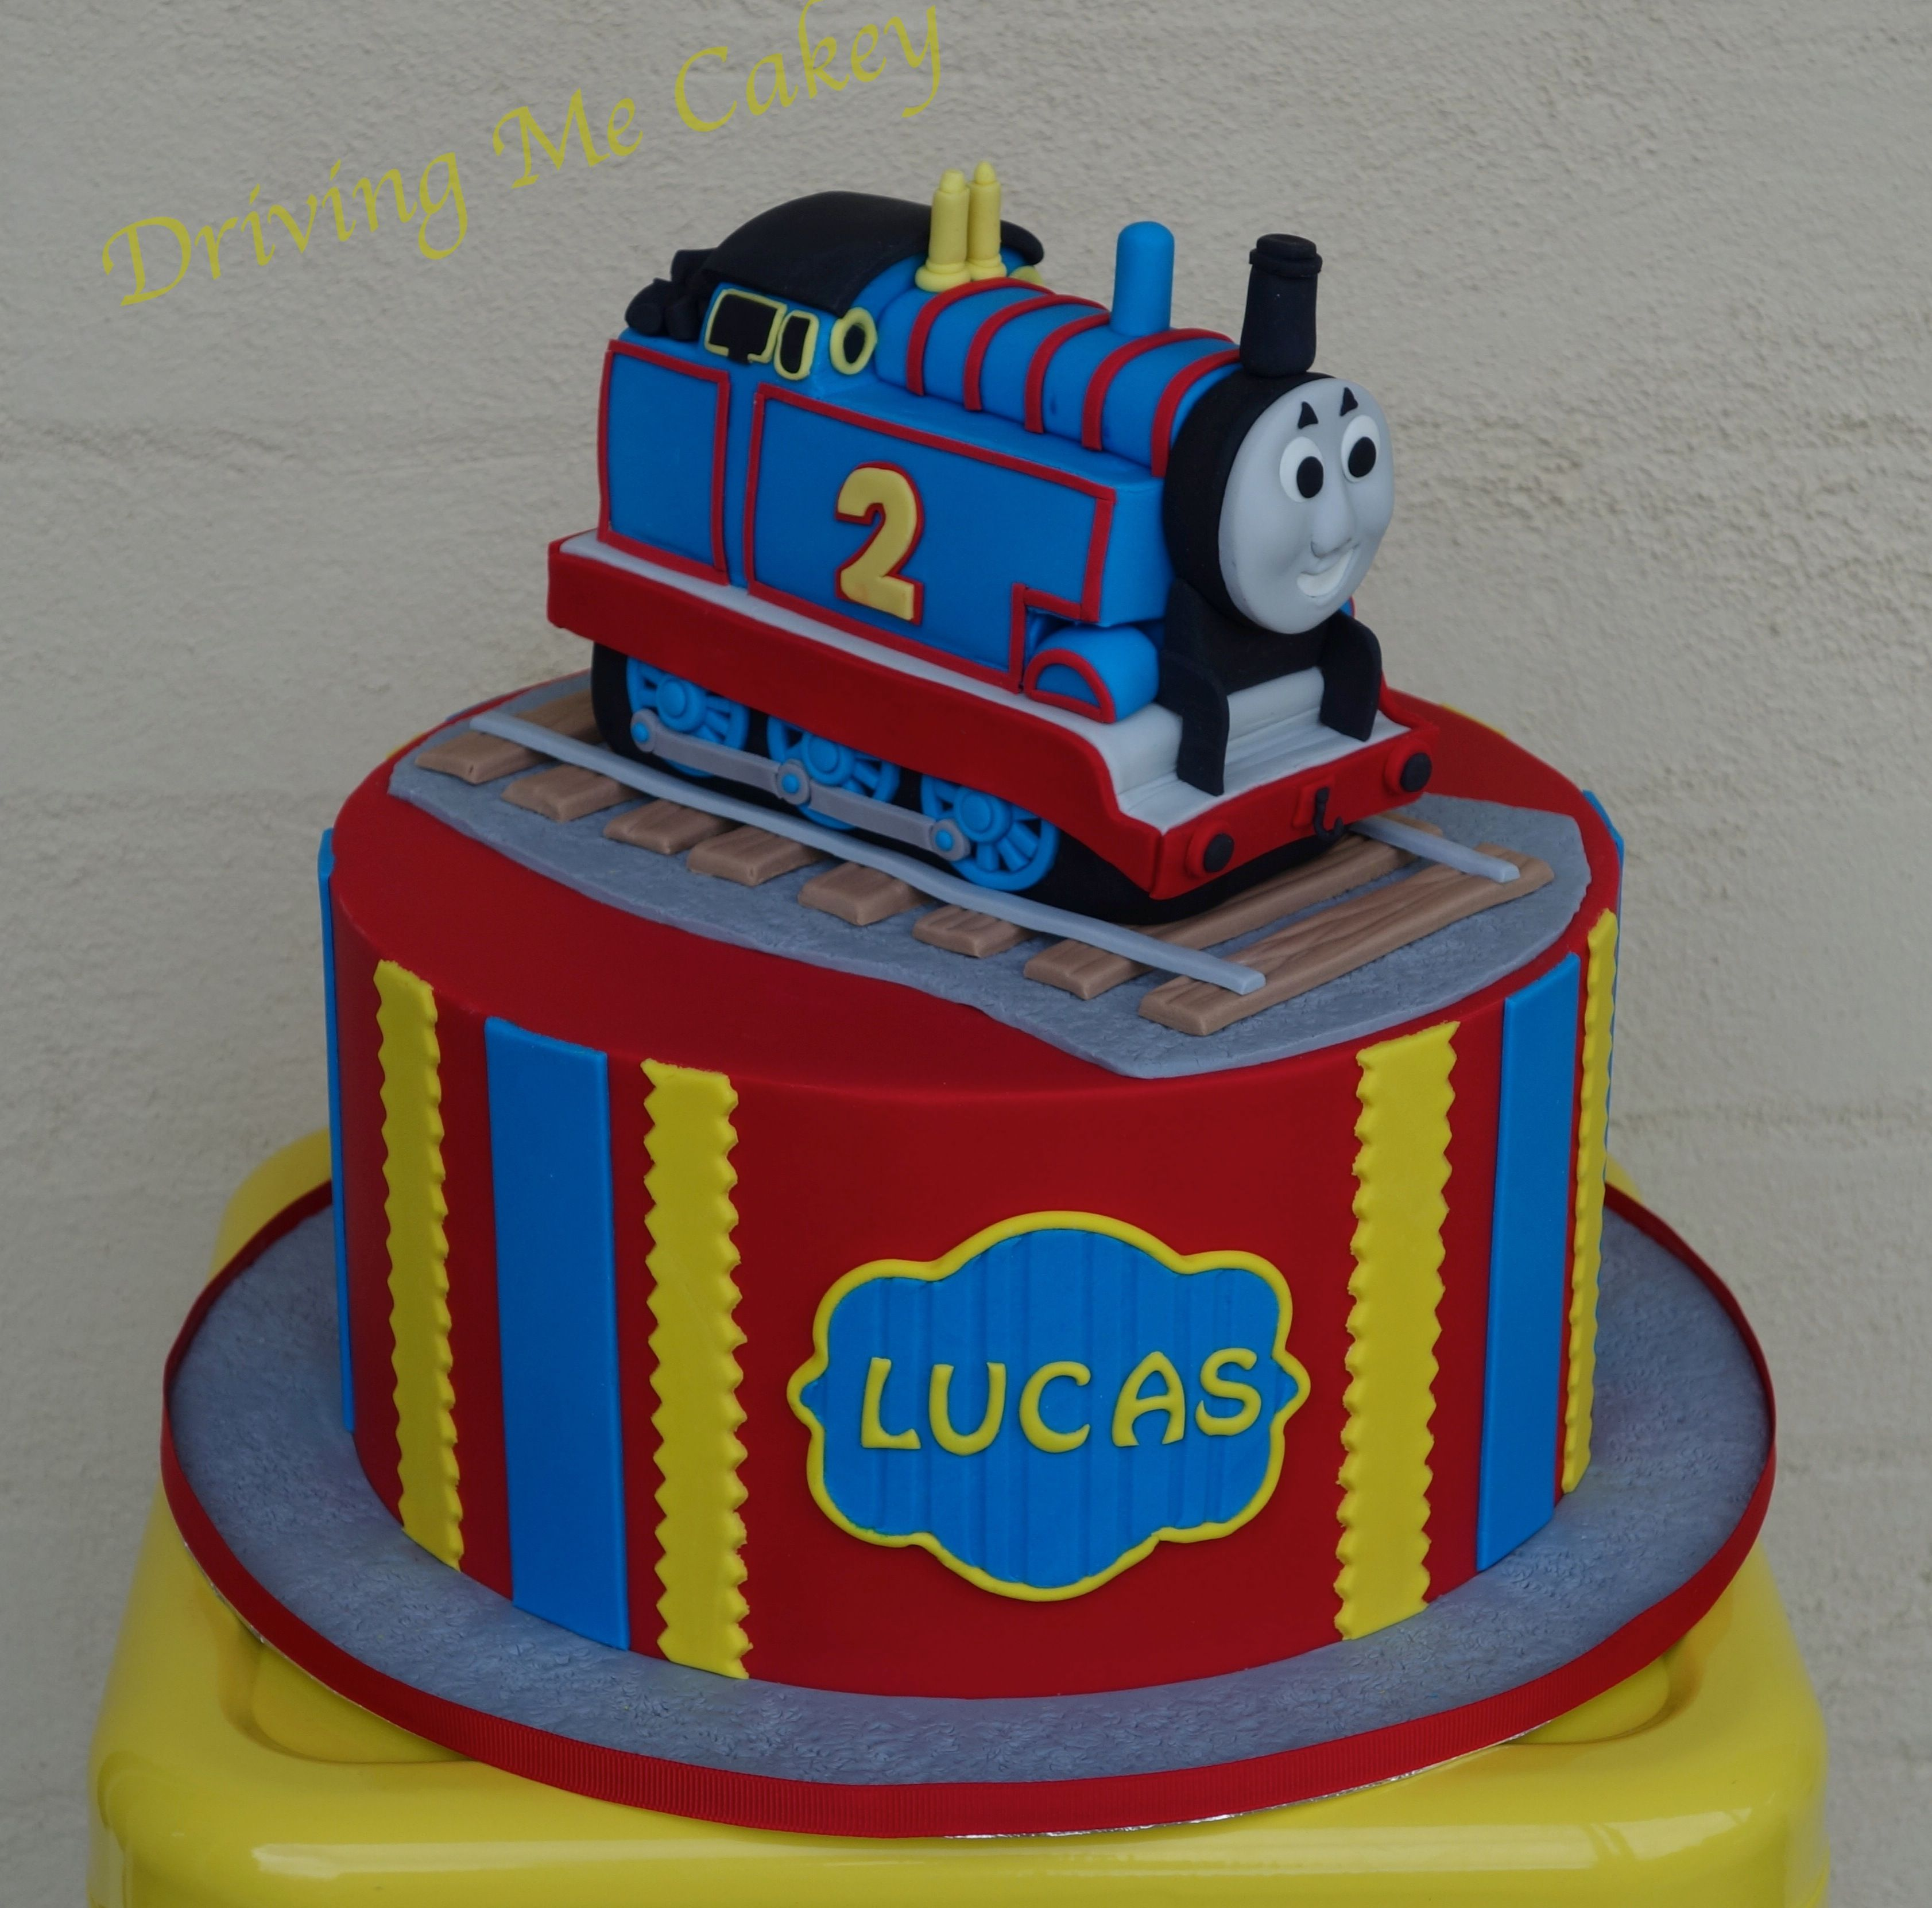 Thomas The Tank Engine Birthday Cake. Find Me On Facebook